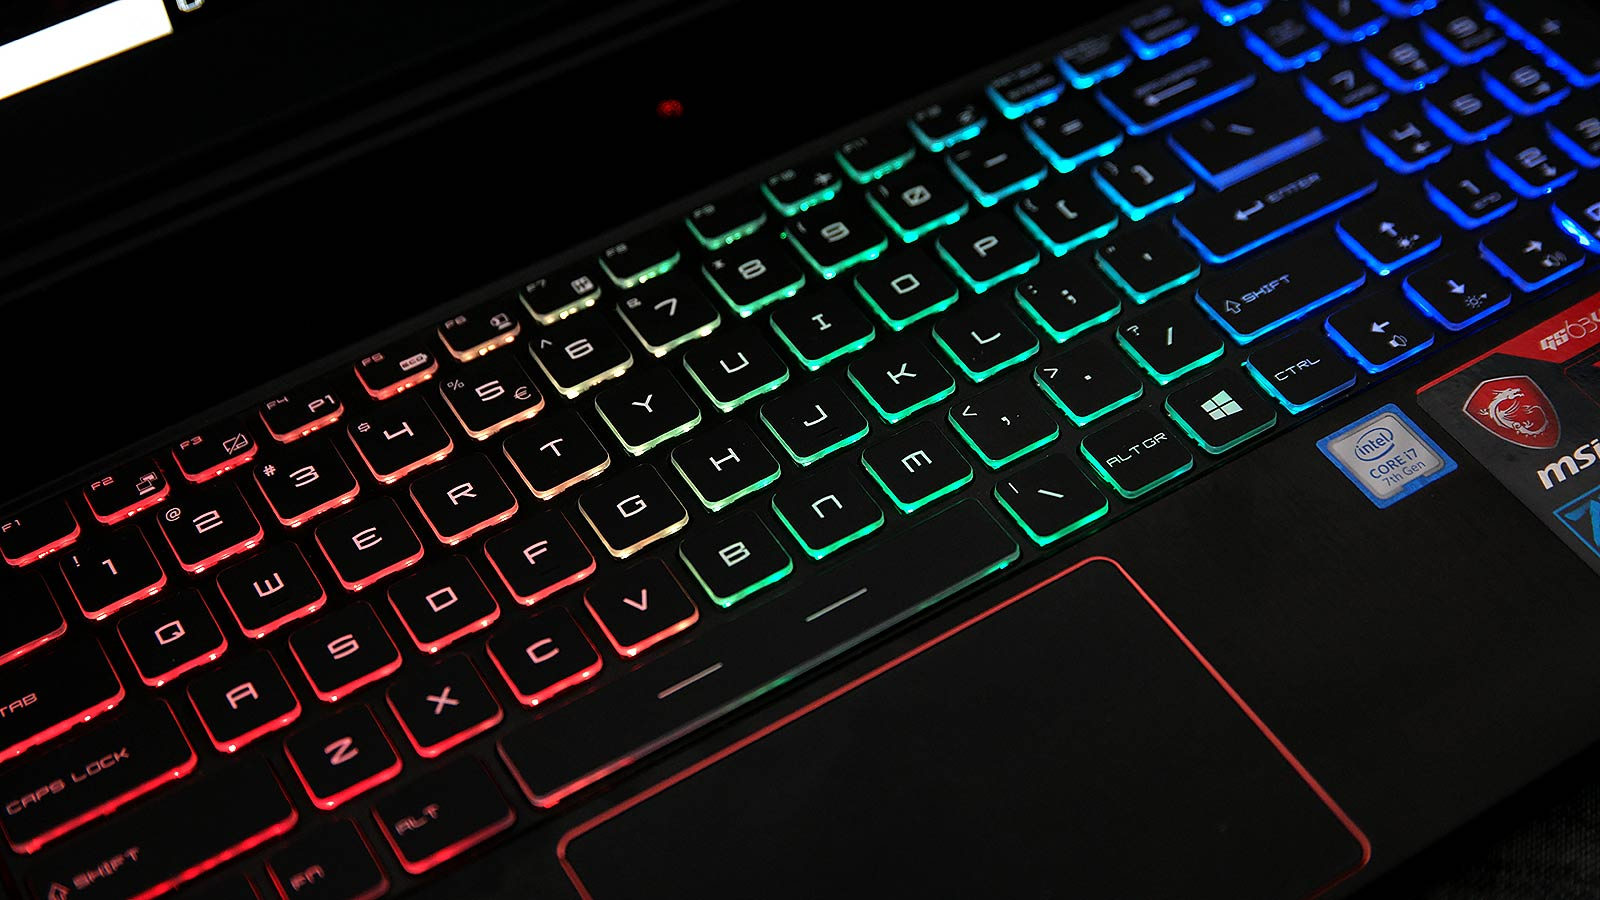 The keys have a decent amount of travel, though they lack the clickiness of the mechanical keyboard found on MSI's GT75VR